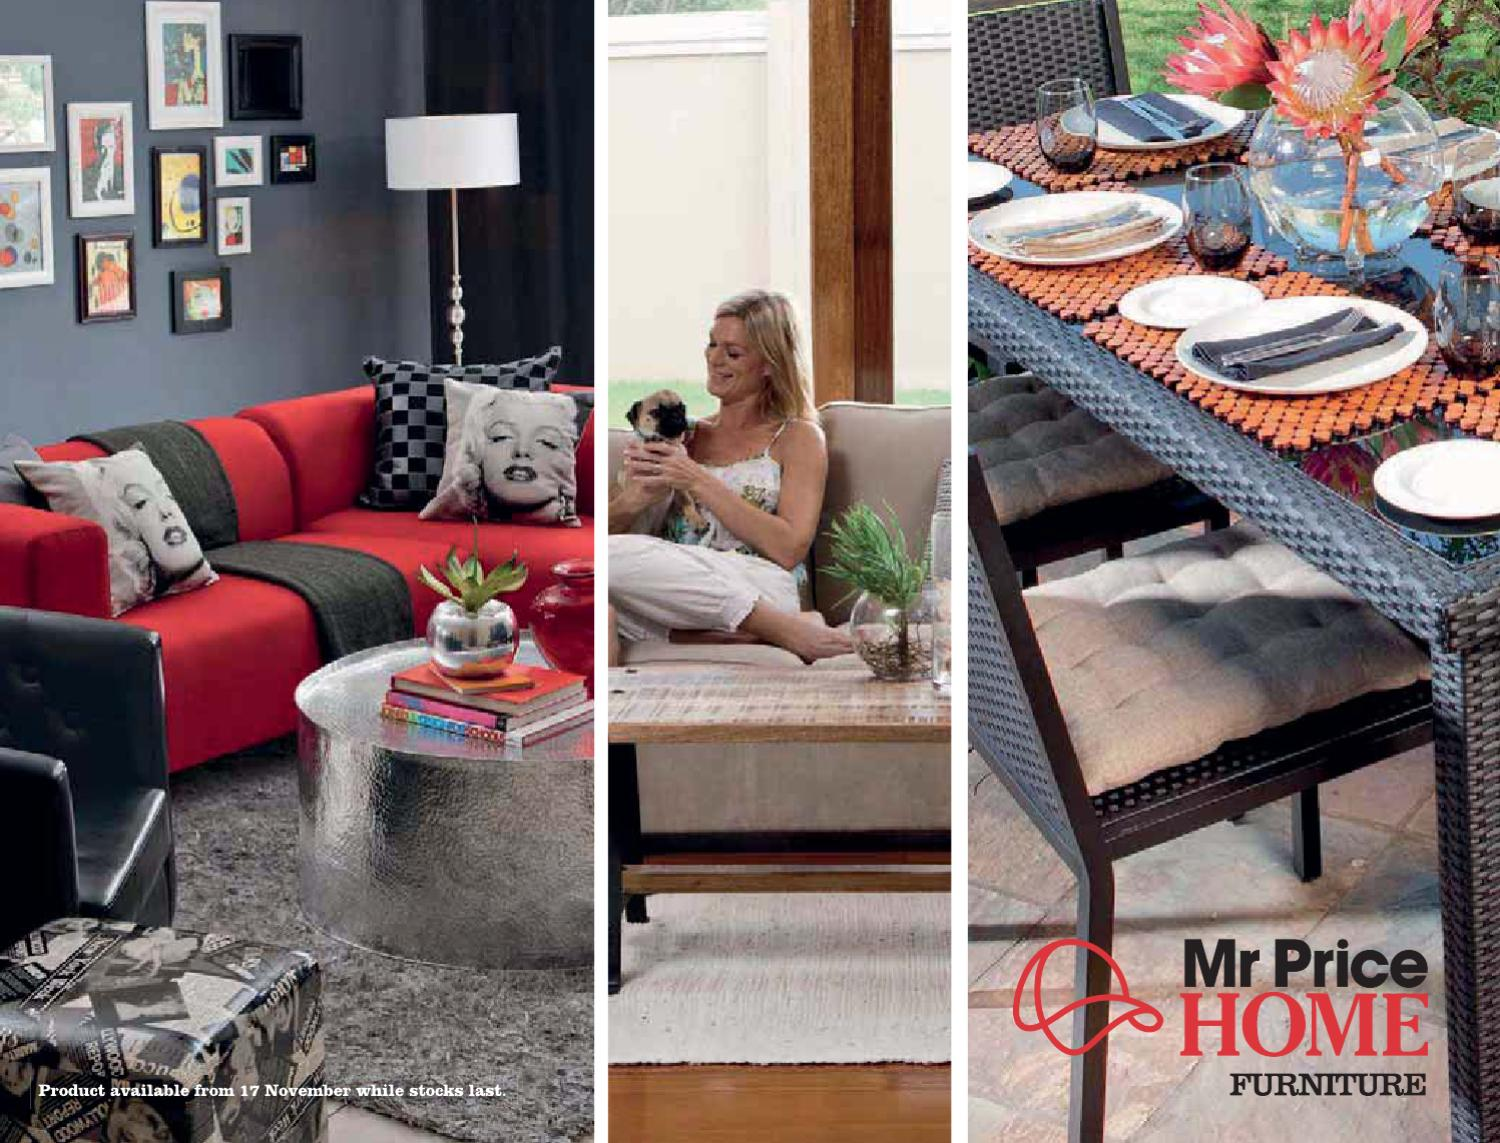 Mr Price Home Furniture Catalogue 2011 By Mrpg Issuu